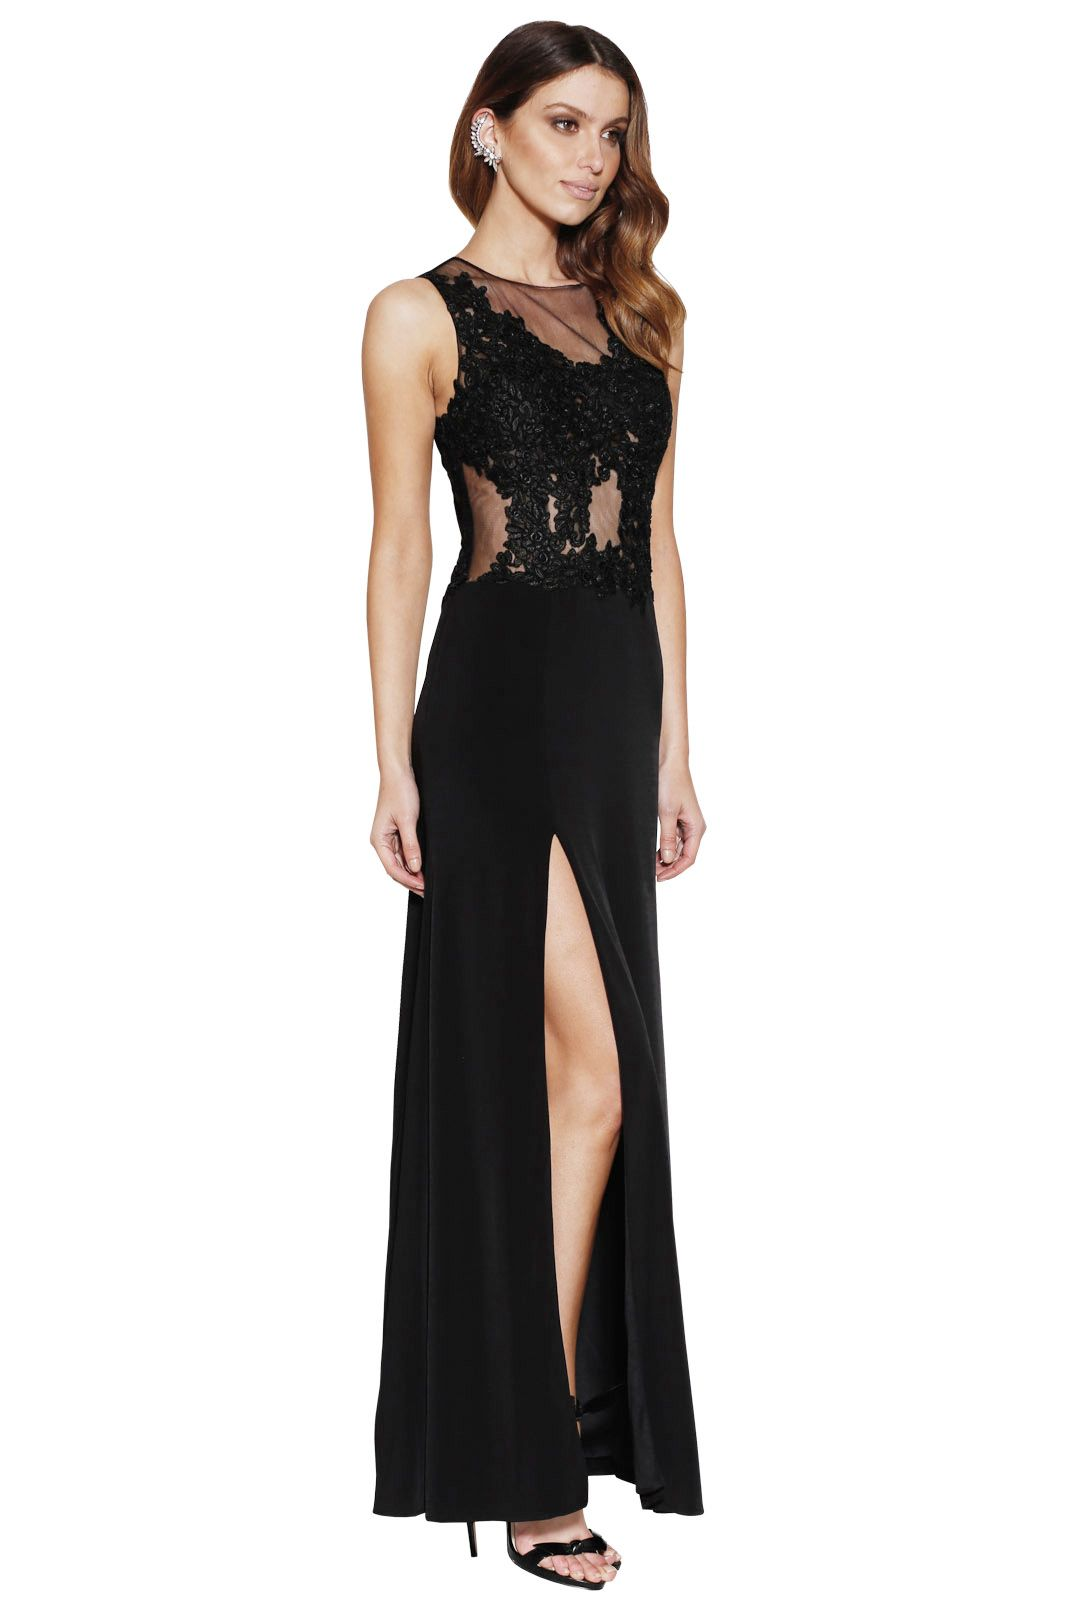 Grace and Hart - Starlet Gown Black - Side